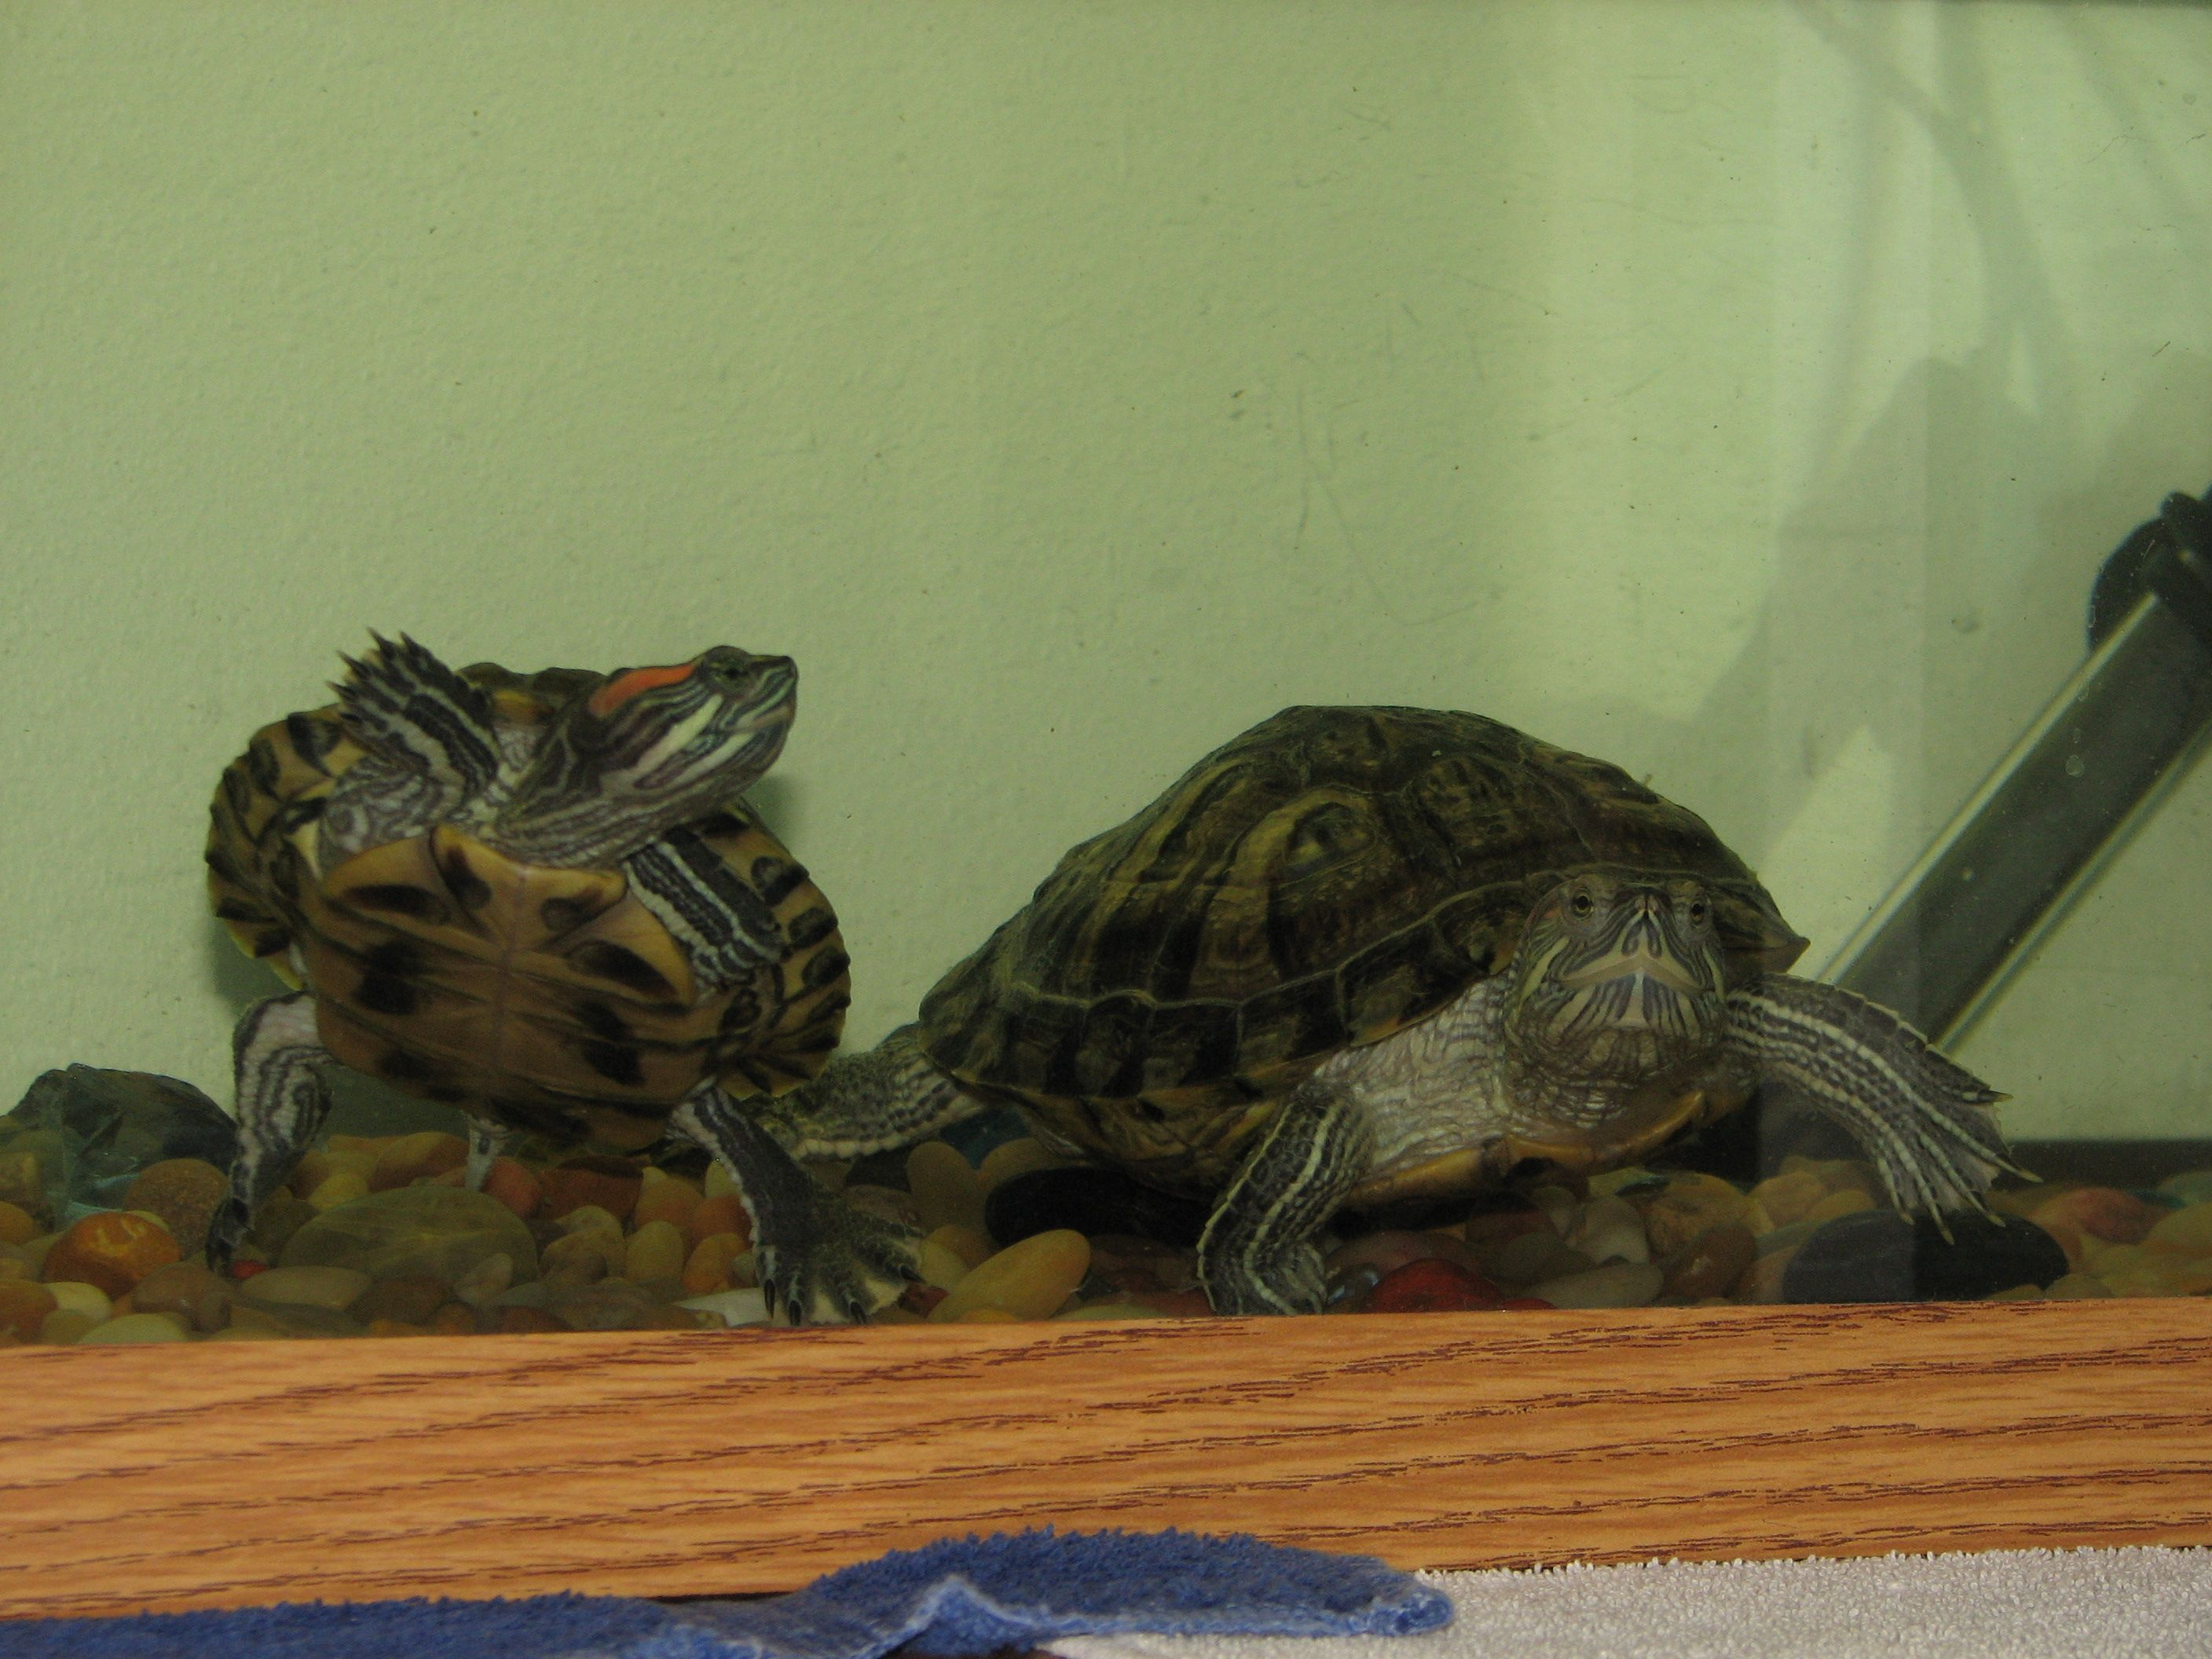 Quique looking at percival my geckos and turtles pinterest geckos